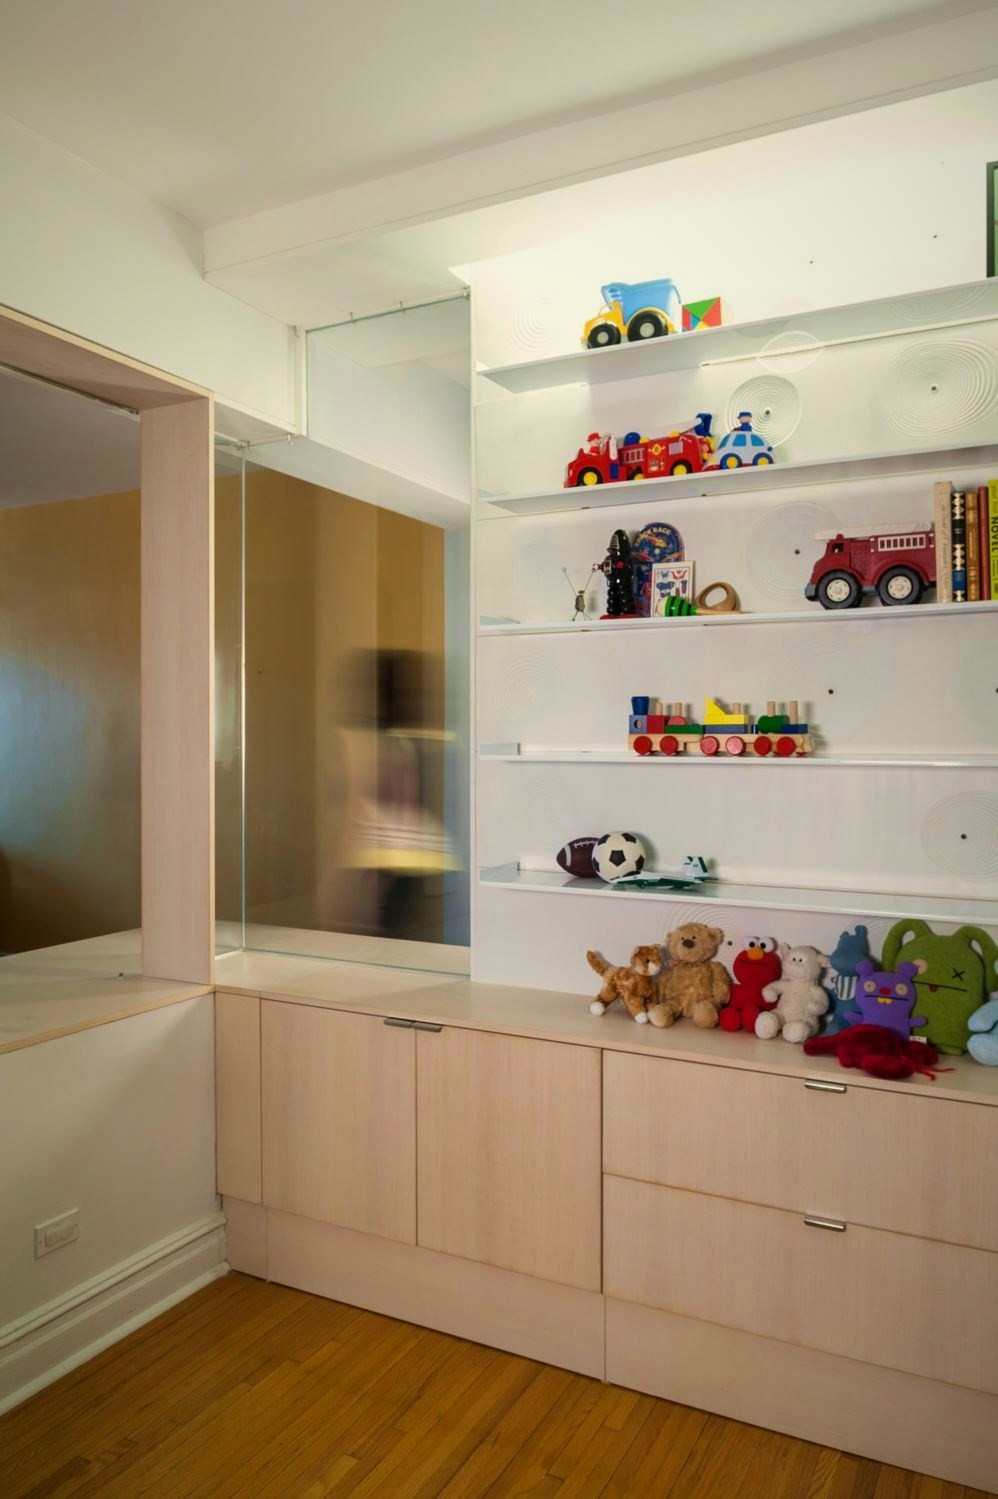 Extensive interior upgrade featuring functional bedroom design to host more efficient workflow with a kids friendly and artistic concept (3)